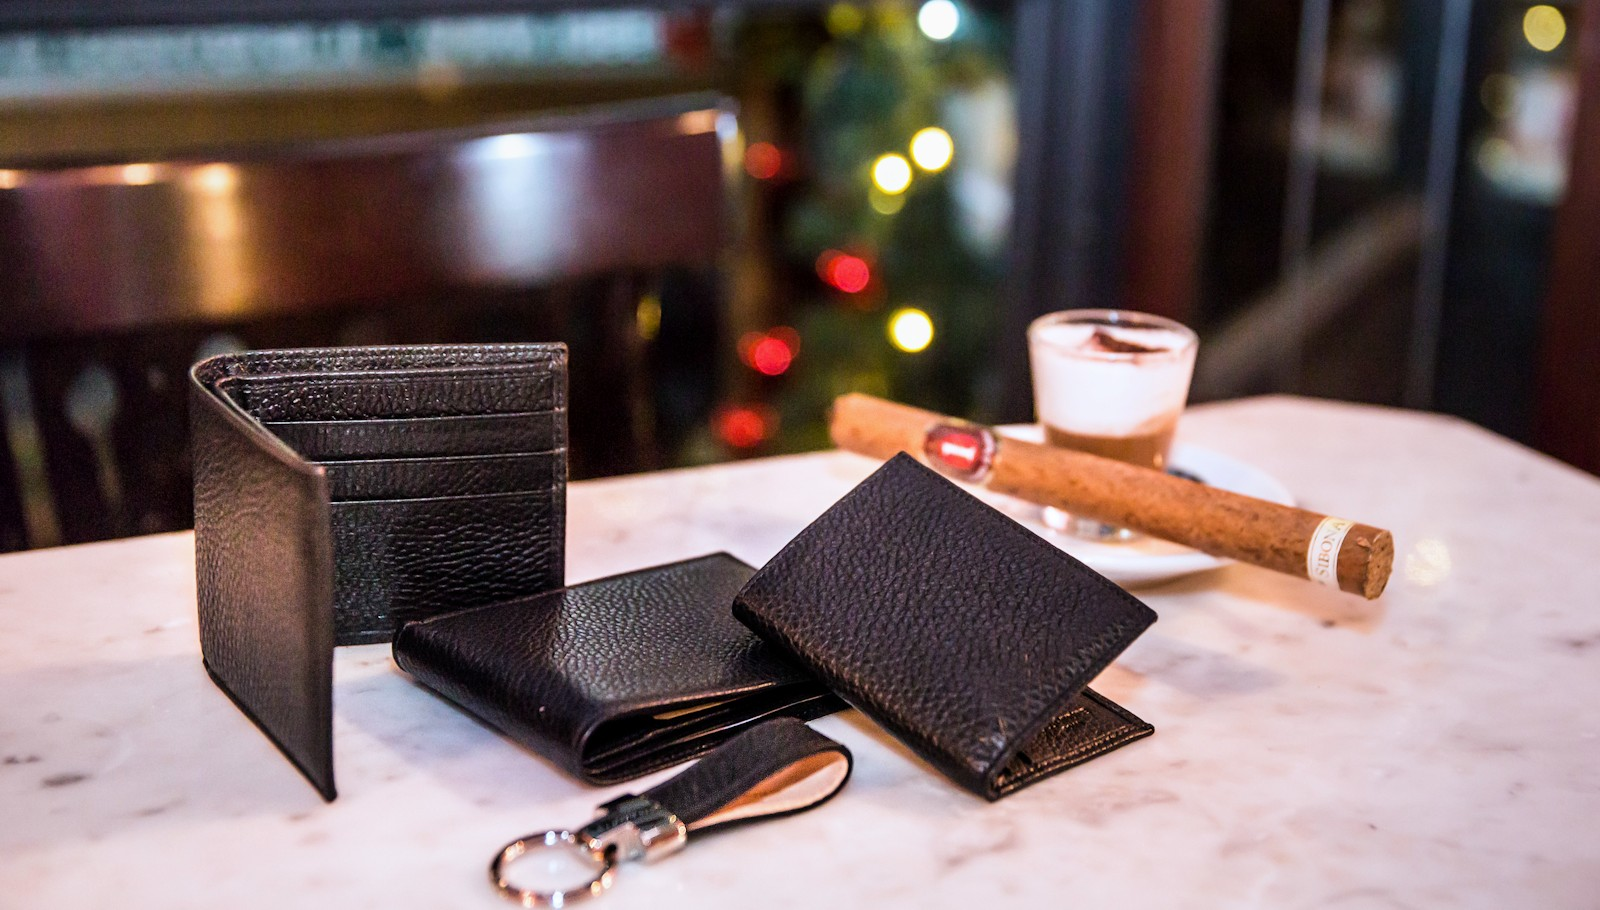 Handmade leather wallets and leather accessories